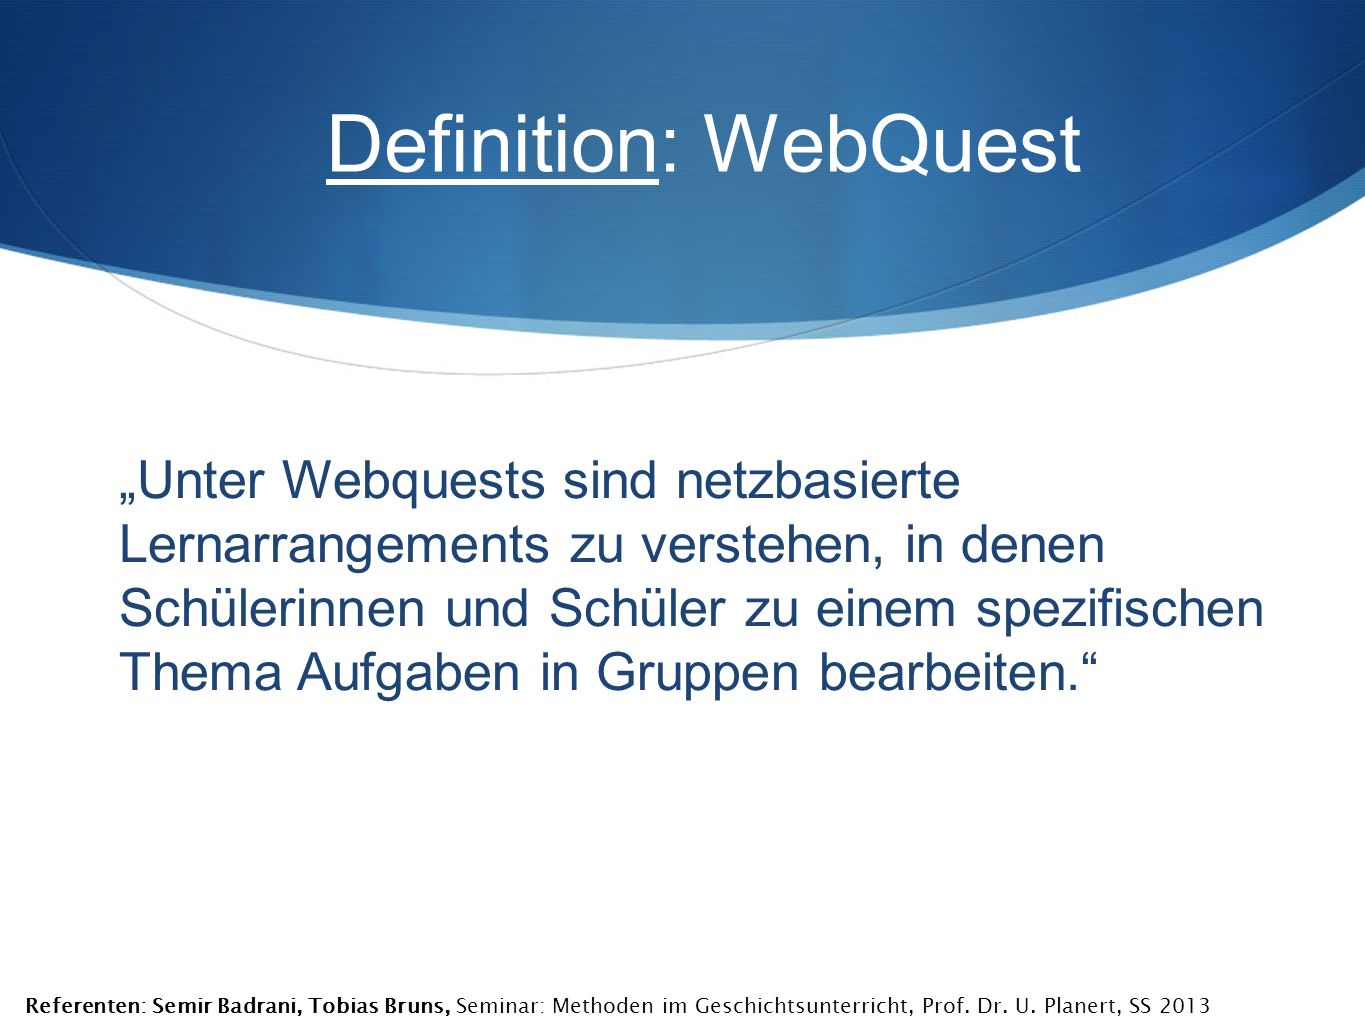 Definition: WebQuest